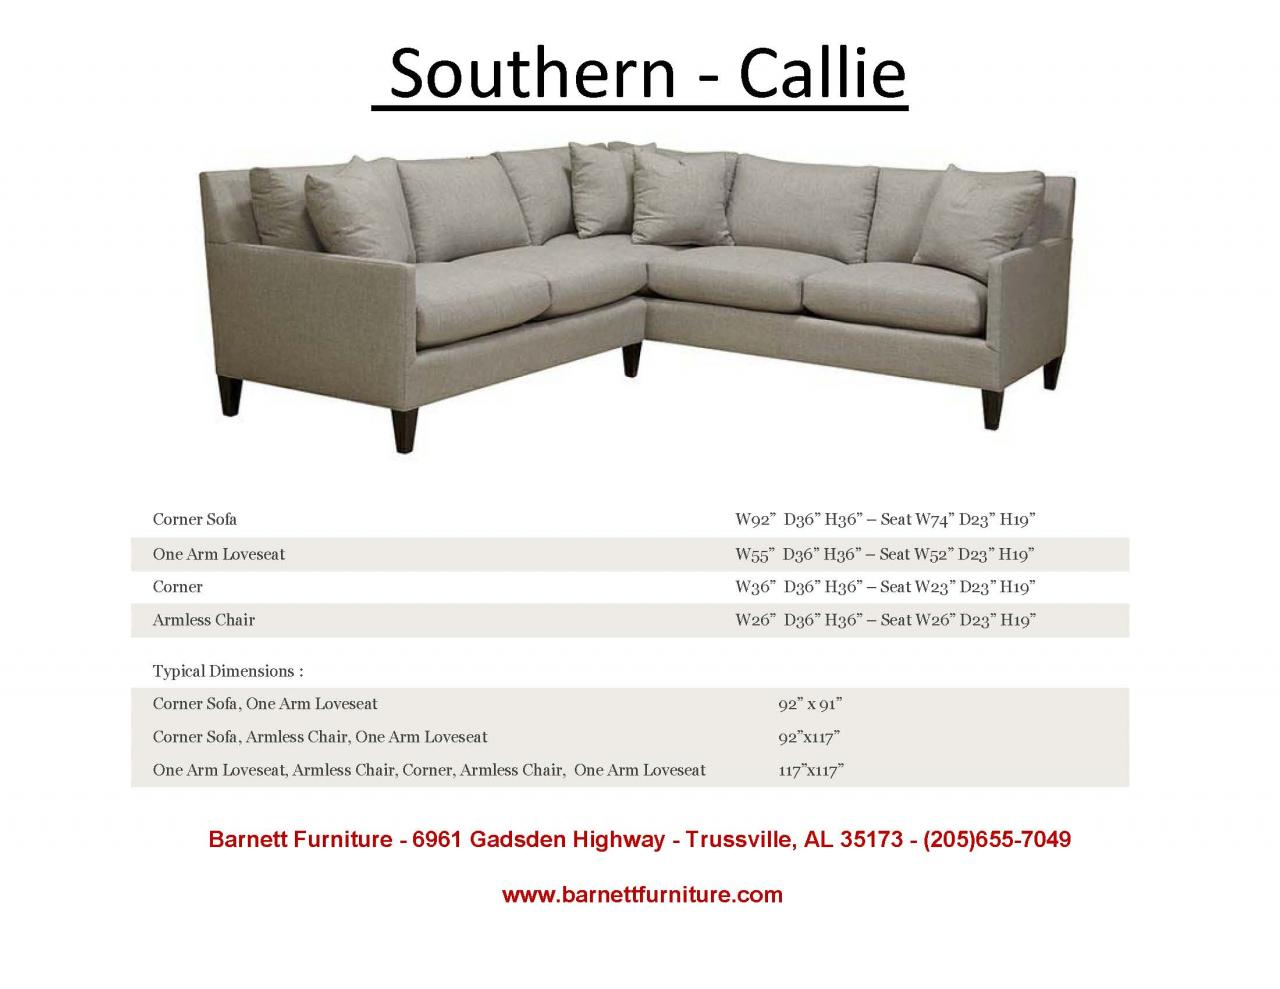 Southern Callie Sectional